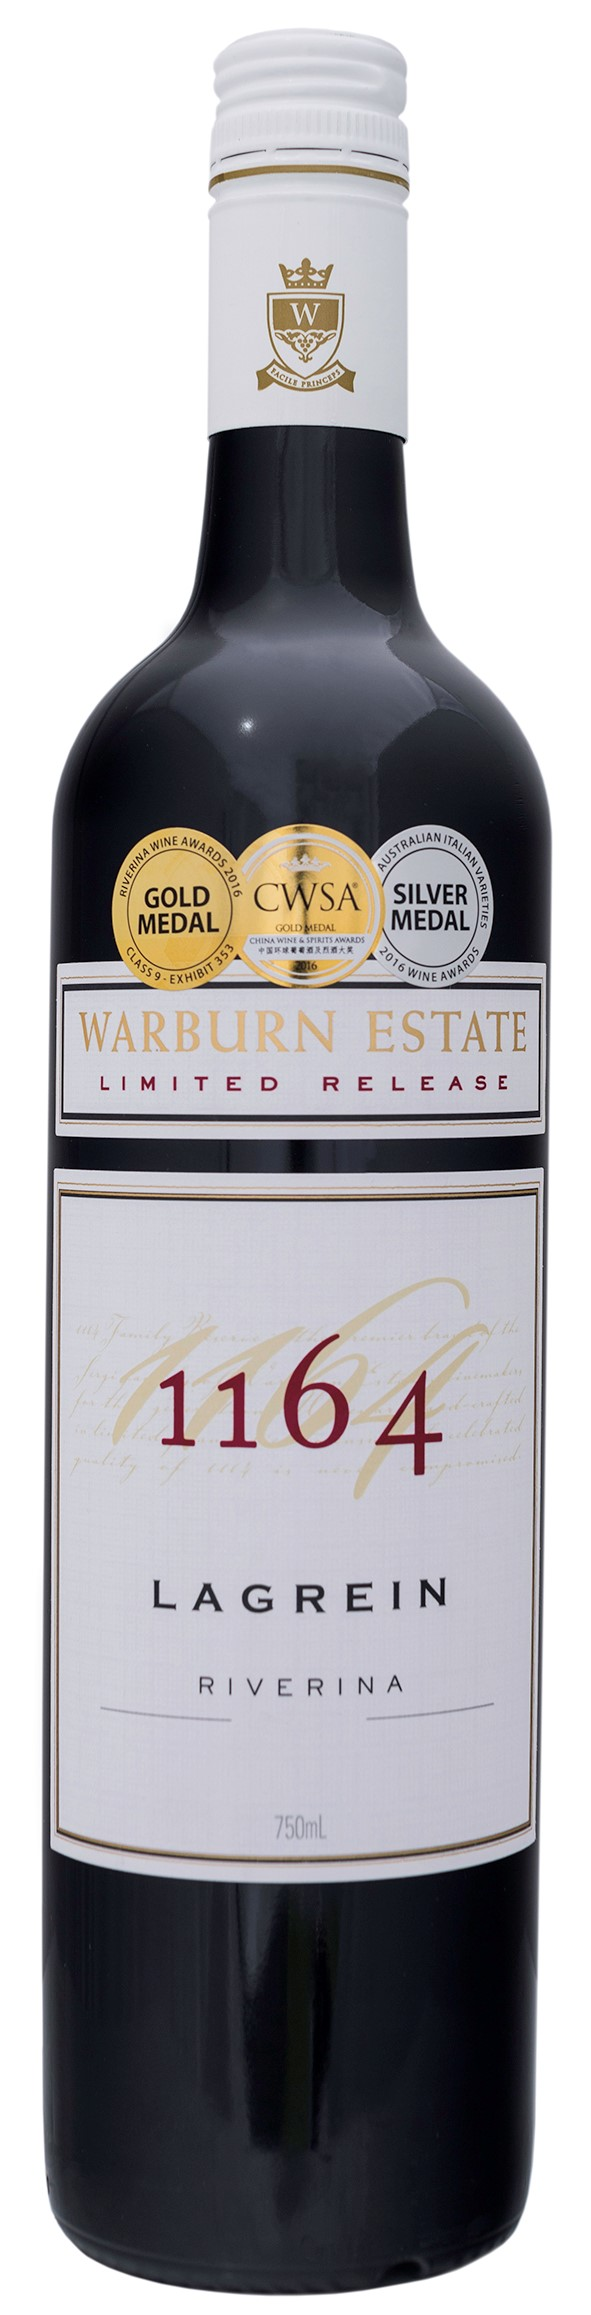 ... home under the 1164 label. A rich and velvety palate is loaded with red  berries and touches of spice – magic with food and to enjoy for the medium  term.